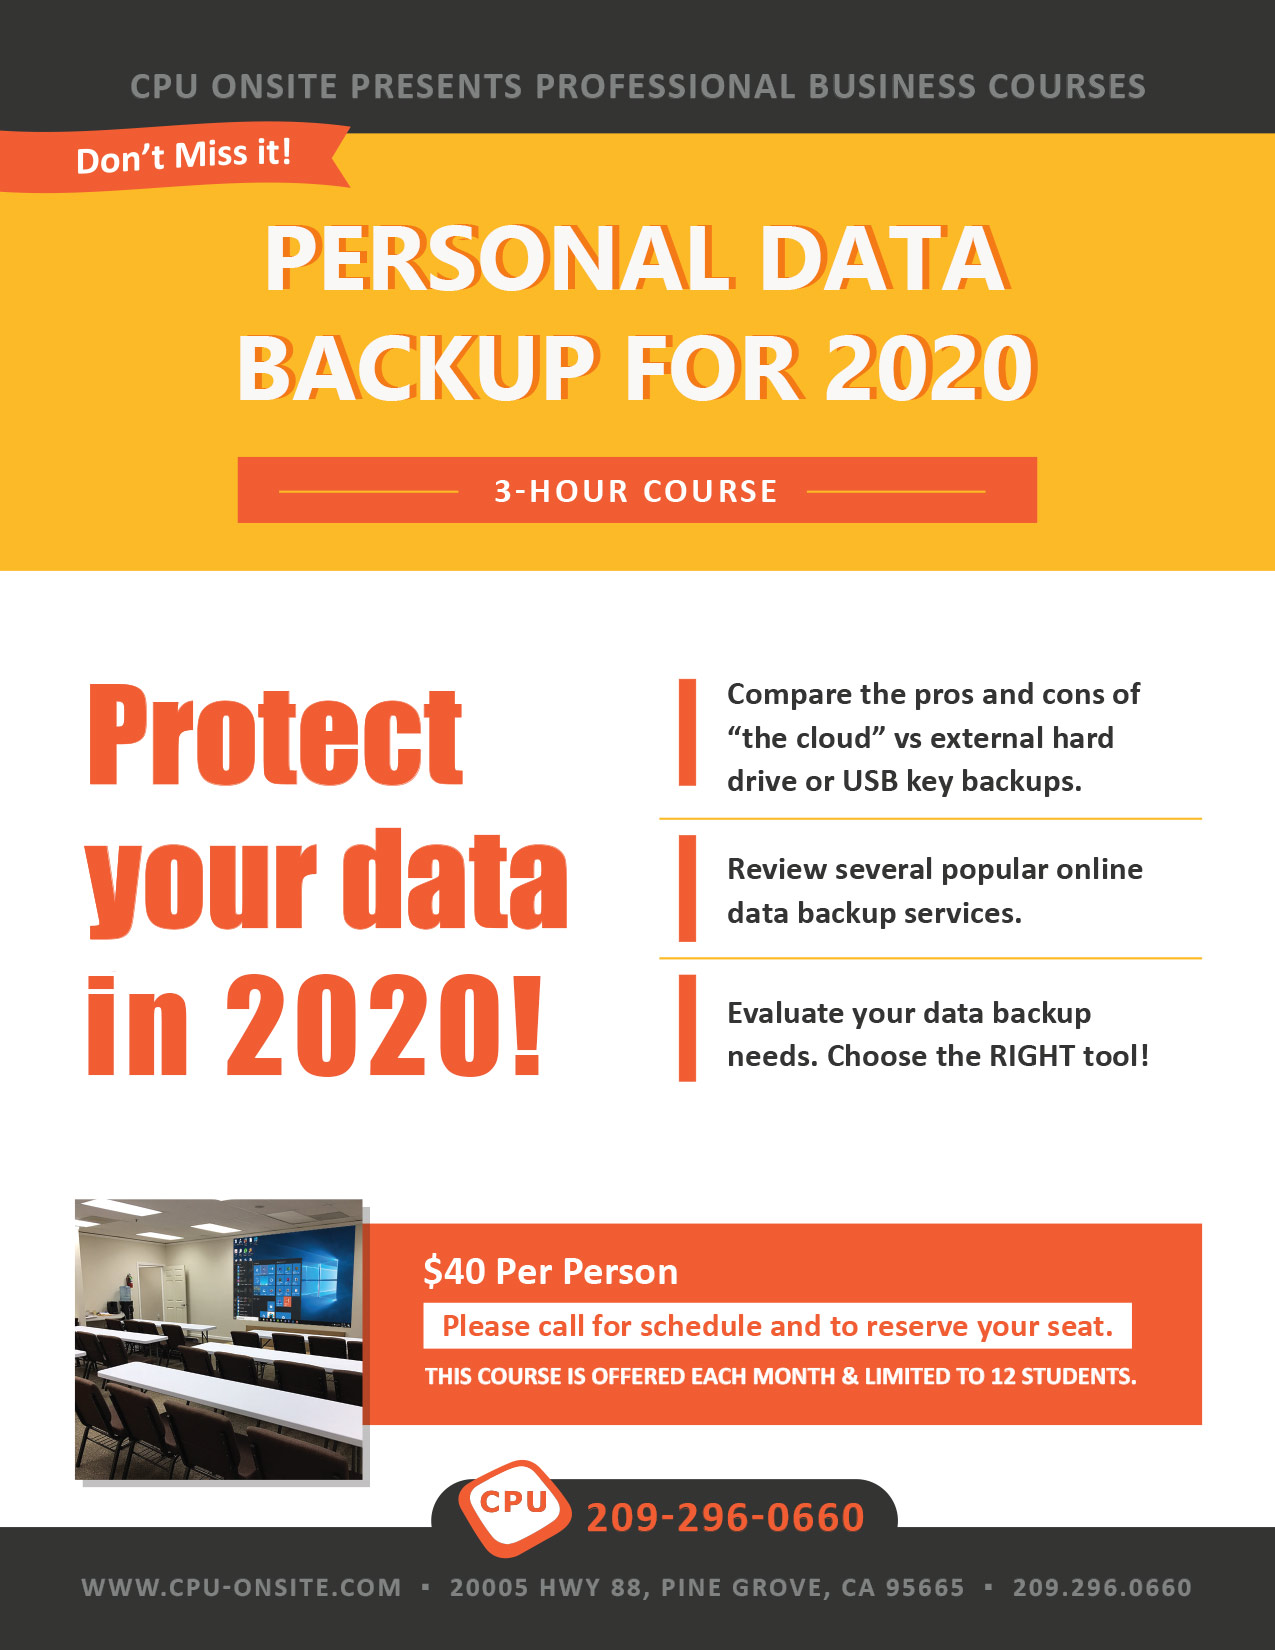 Personal Data Backup for 2020